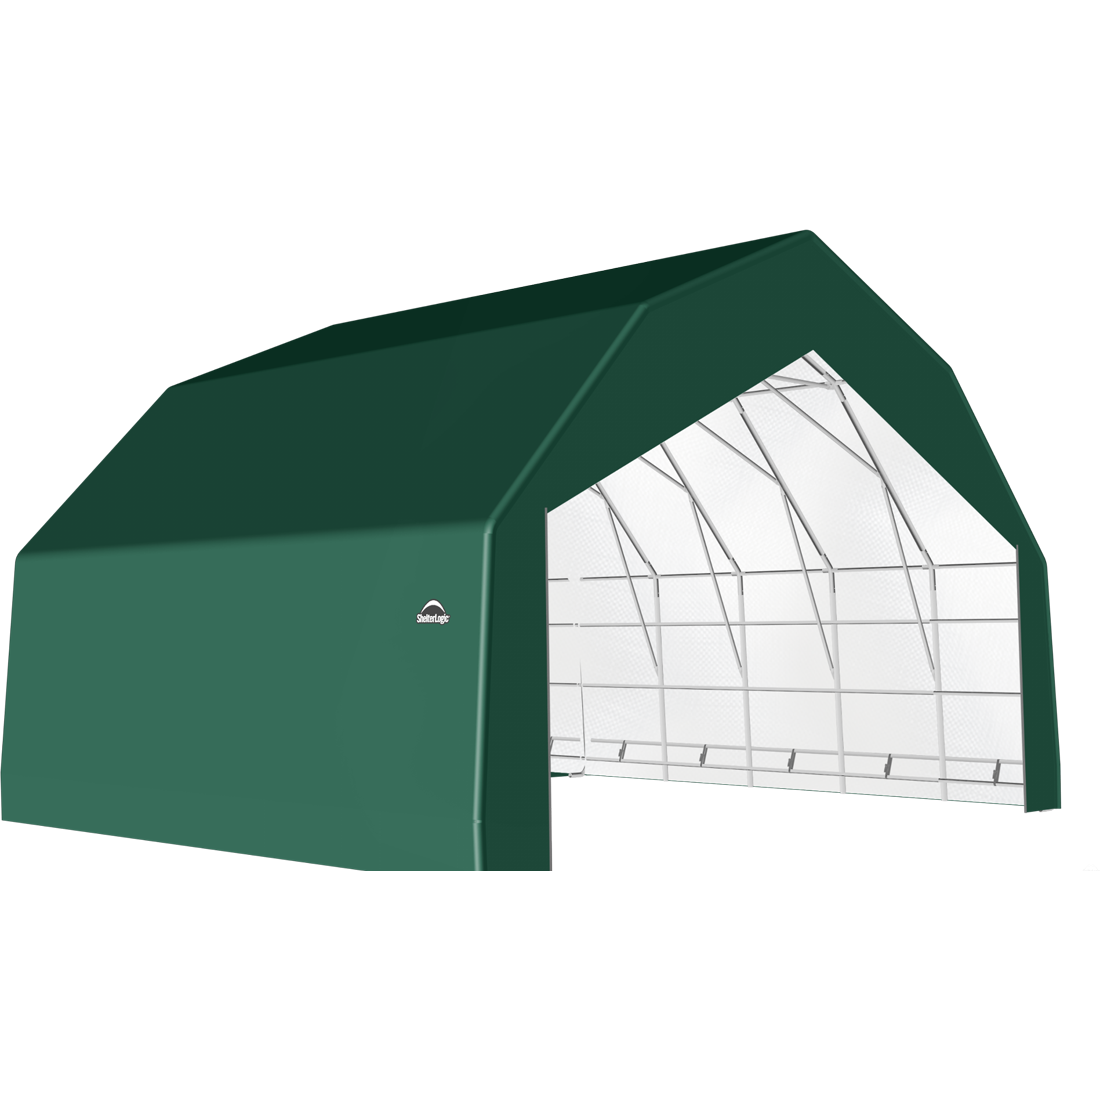 SP Barn 30X24X18 Green 14 oz PE Shelter